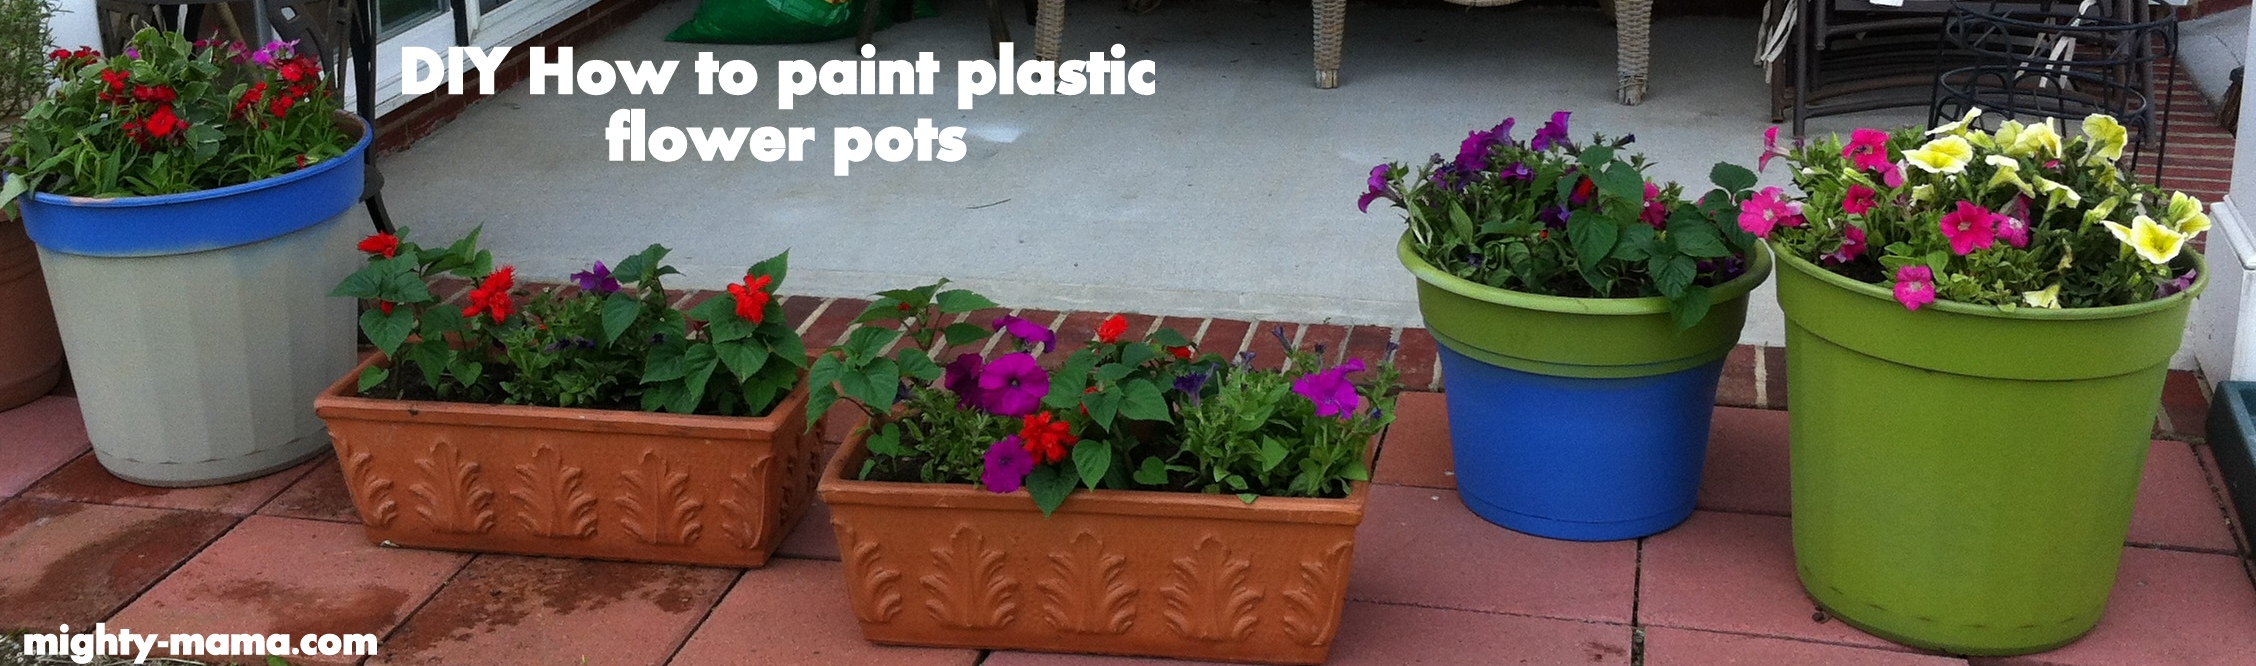 Mighty Mama - WordPress.com & paint flower pots | Mighty Mama